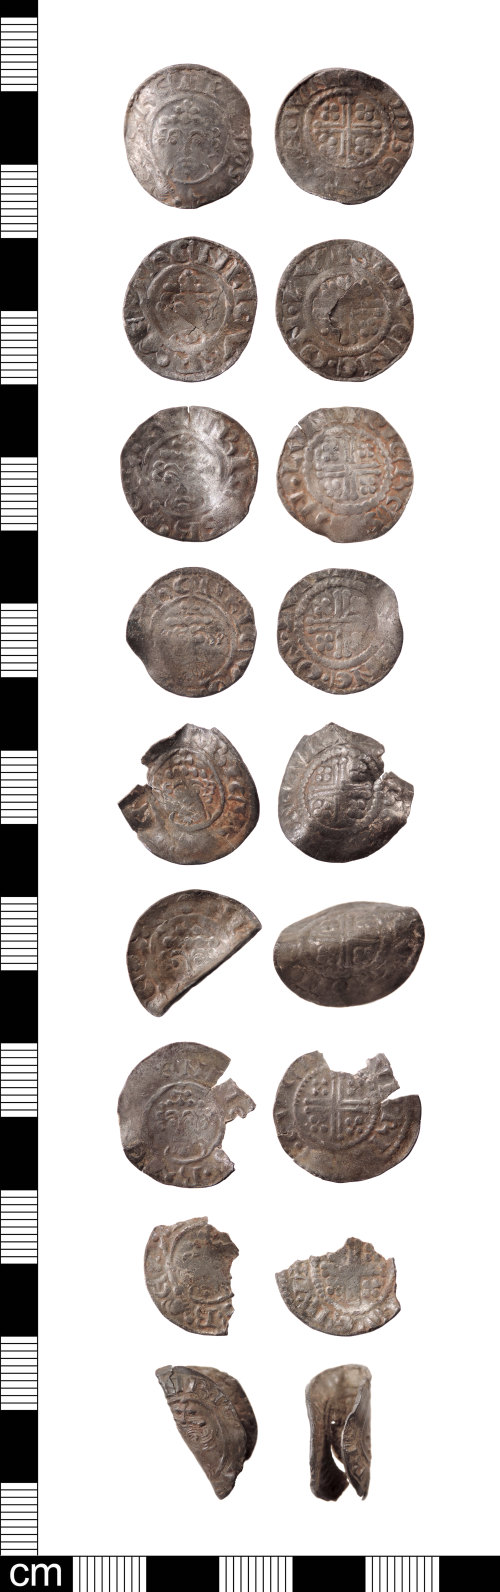 LON-97BE75: Nine Medieval silver pennies of short cross type dating AD1180-1247.